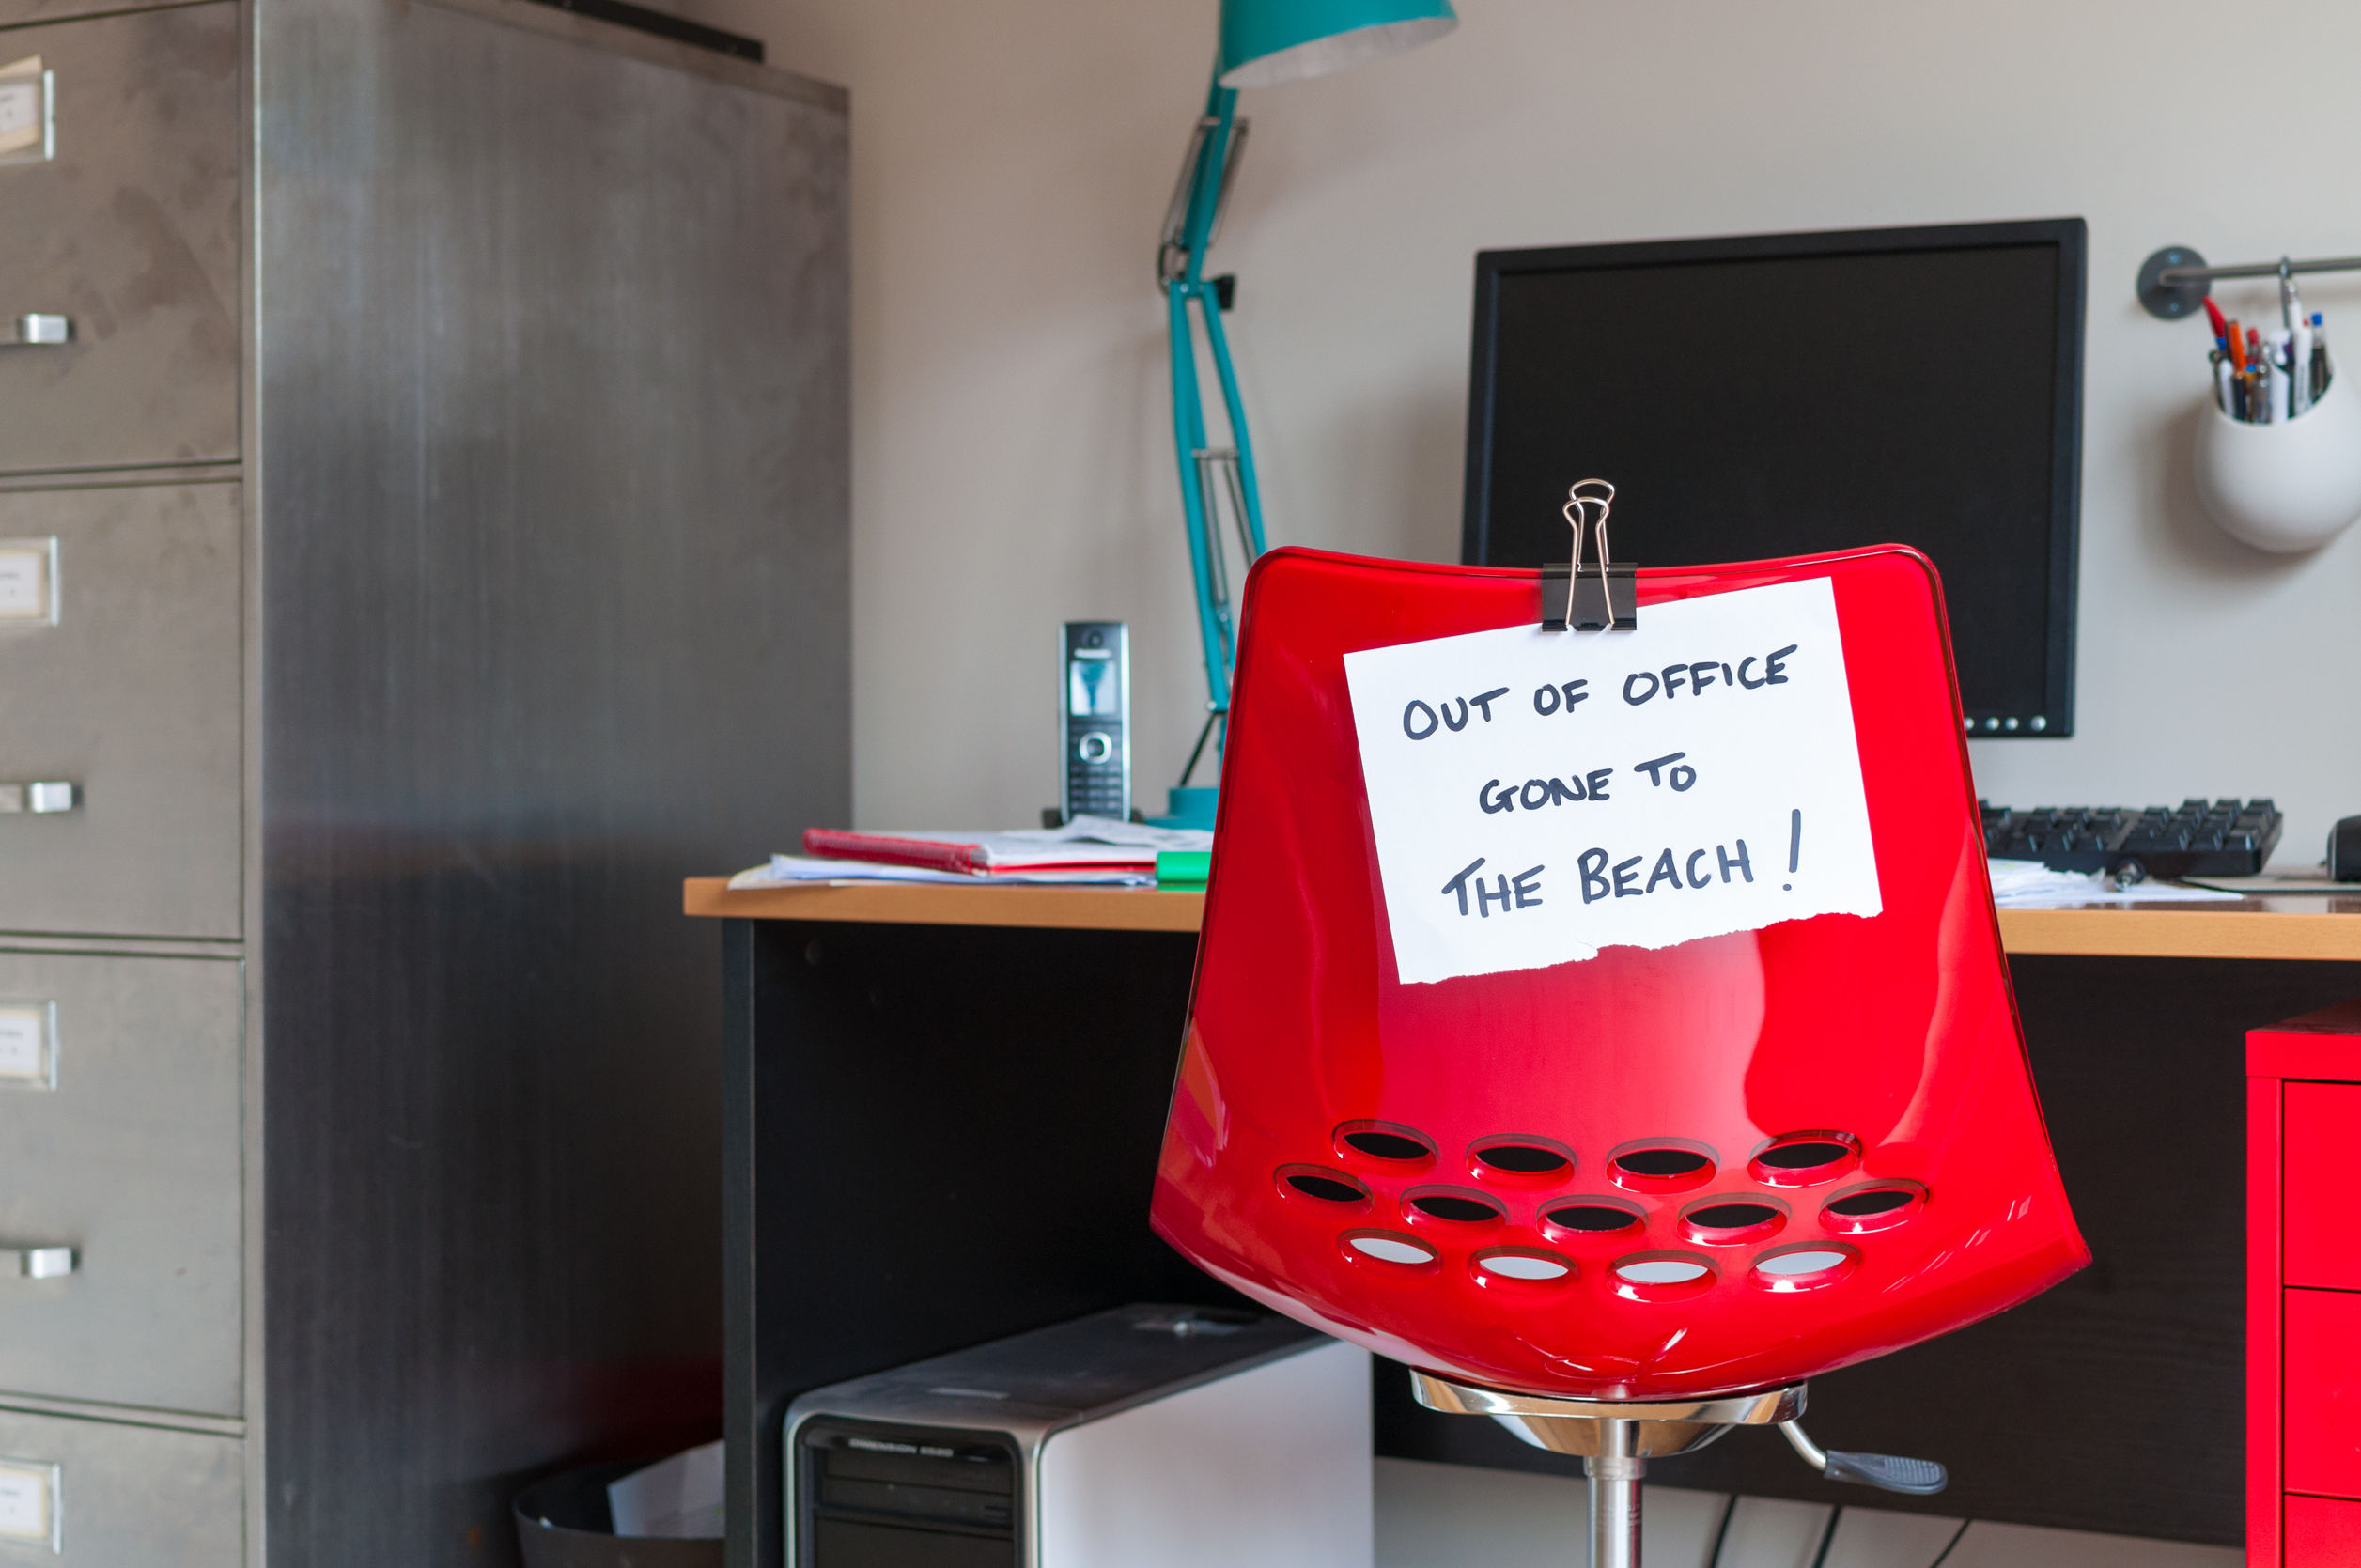 32840853 - Employee Leaves Note On Back Of Office Chair: Out Of Office. Gone To The Beach!